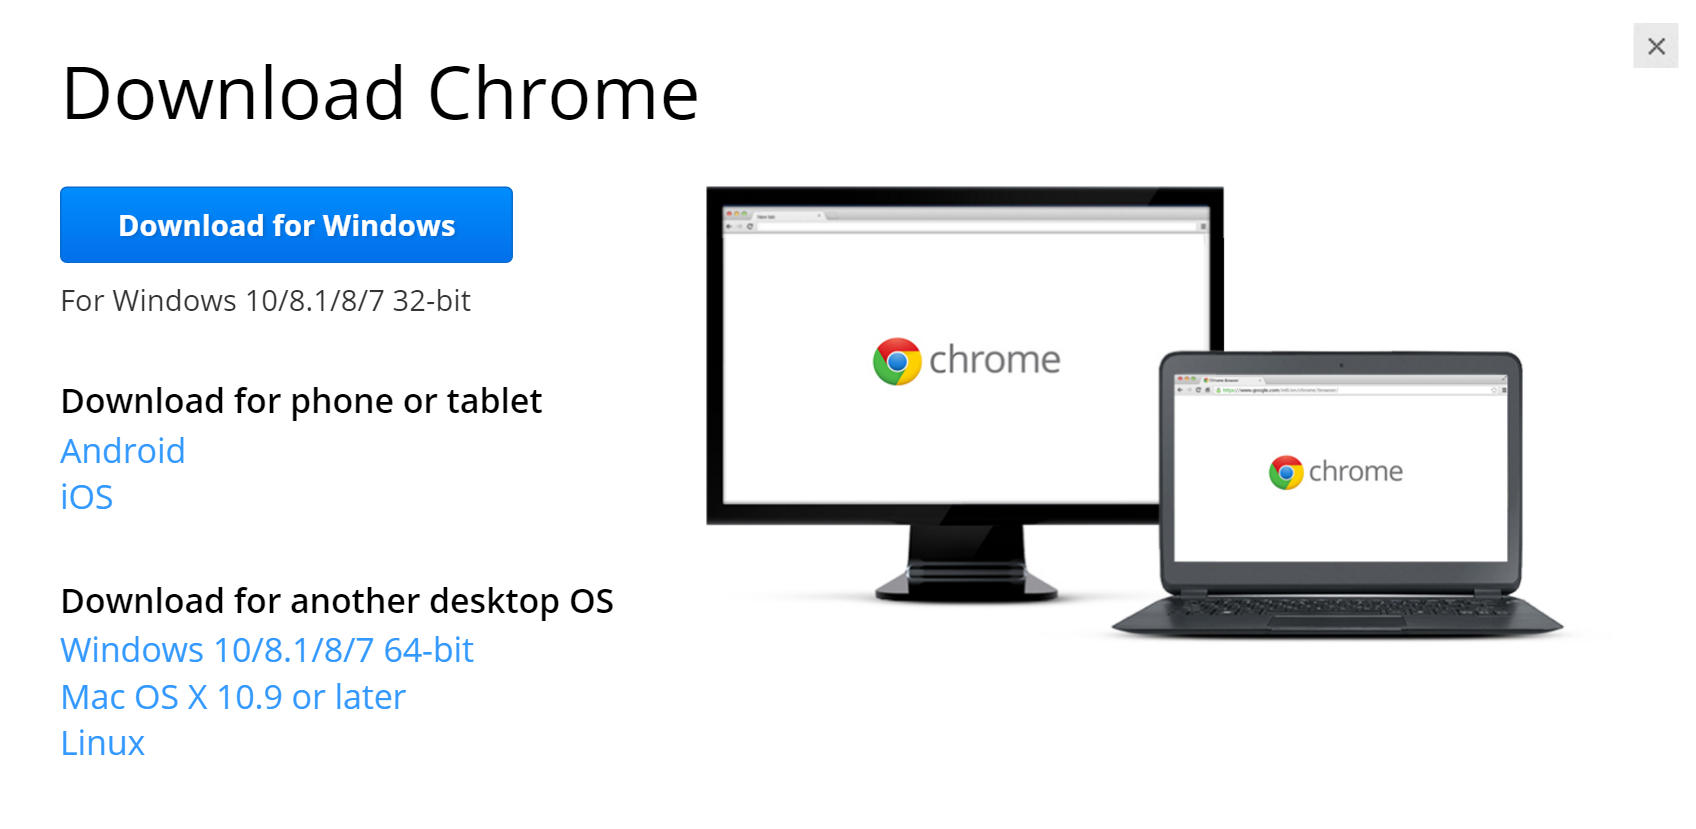 Chrome download for windows 7 32 bit | how to install chrome 32.